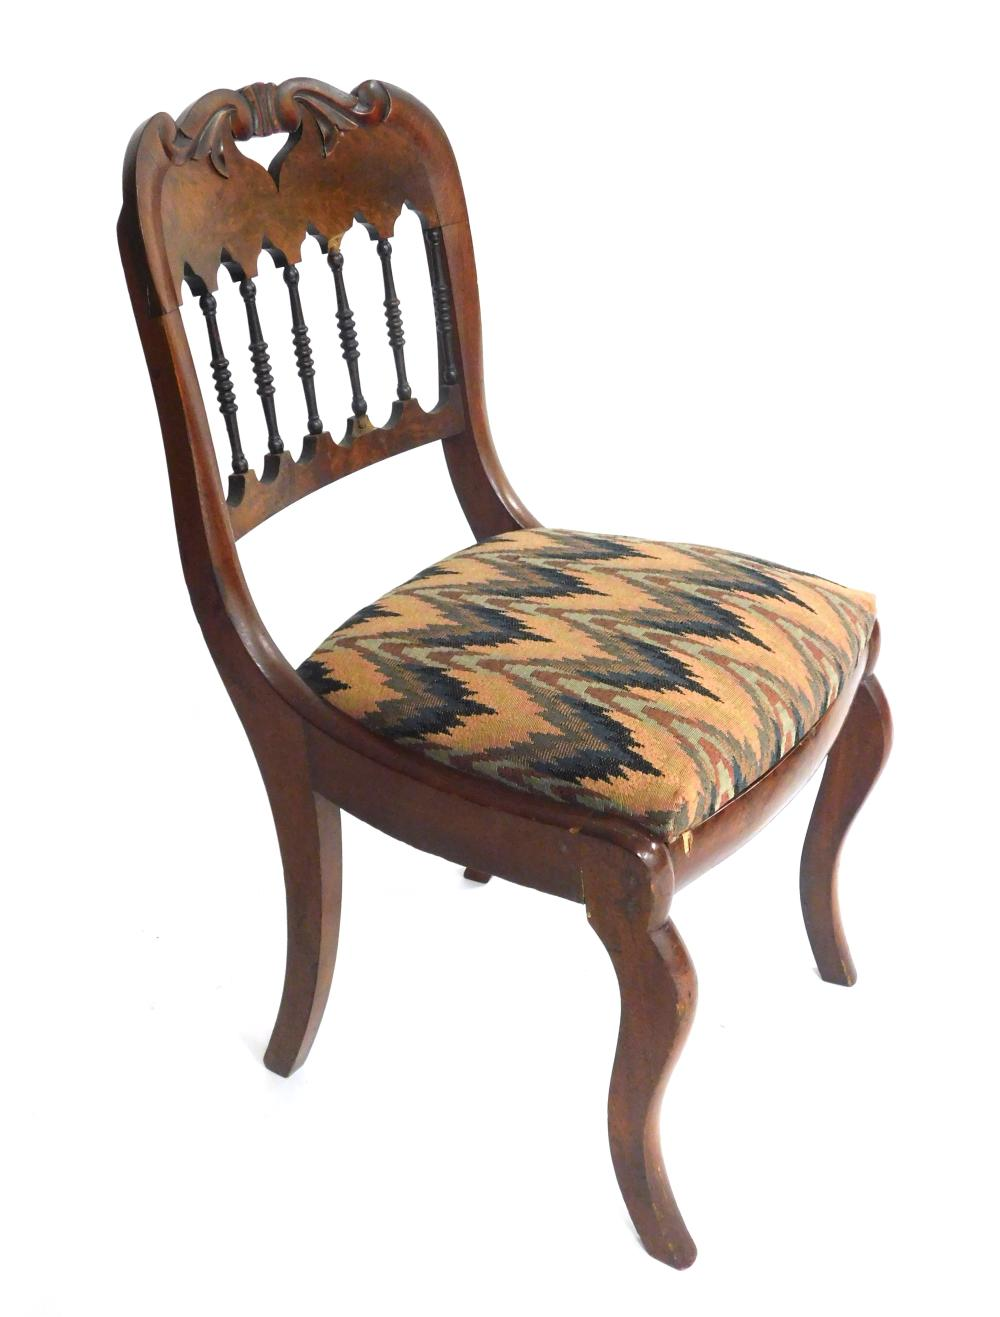 Late 19th/ early 20th C. side chair and a stand by Old Colony, details include: side chair with pierced and carved scrolling crest o...